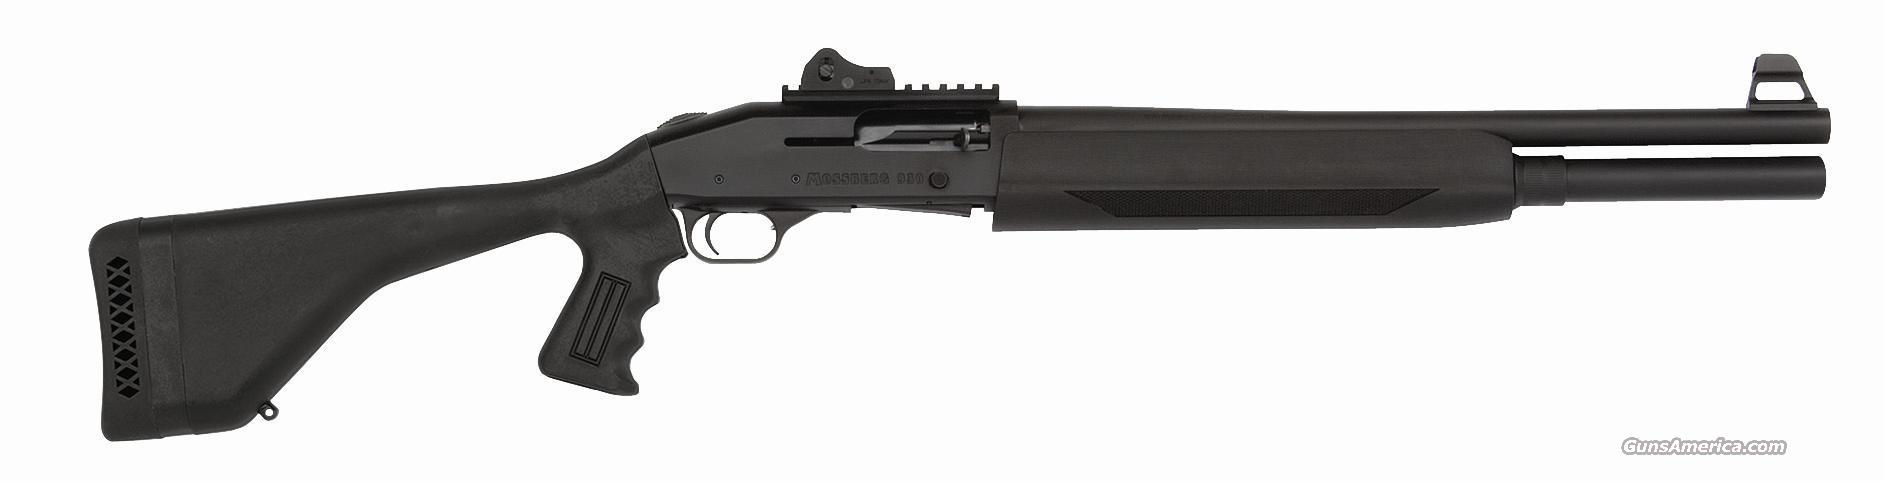 Mossberg Model 930 SPX Tactical, 12 Gauge  Guns > Shotguns > Mossberg Shotguns > Autoloaders